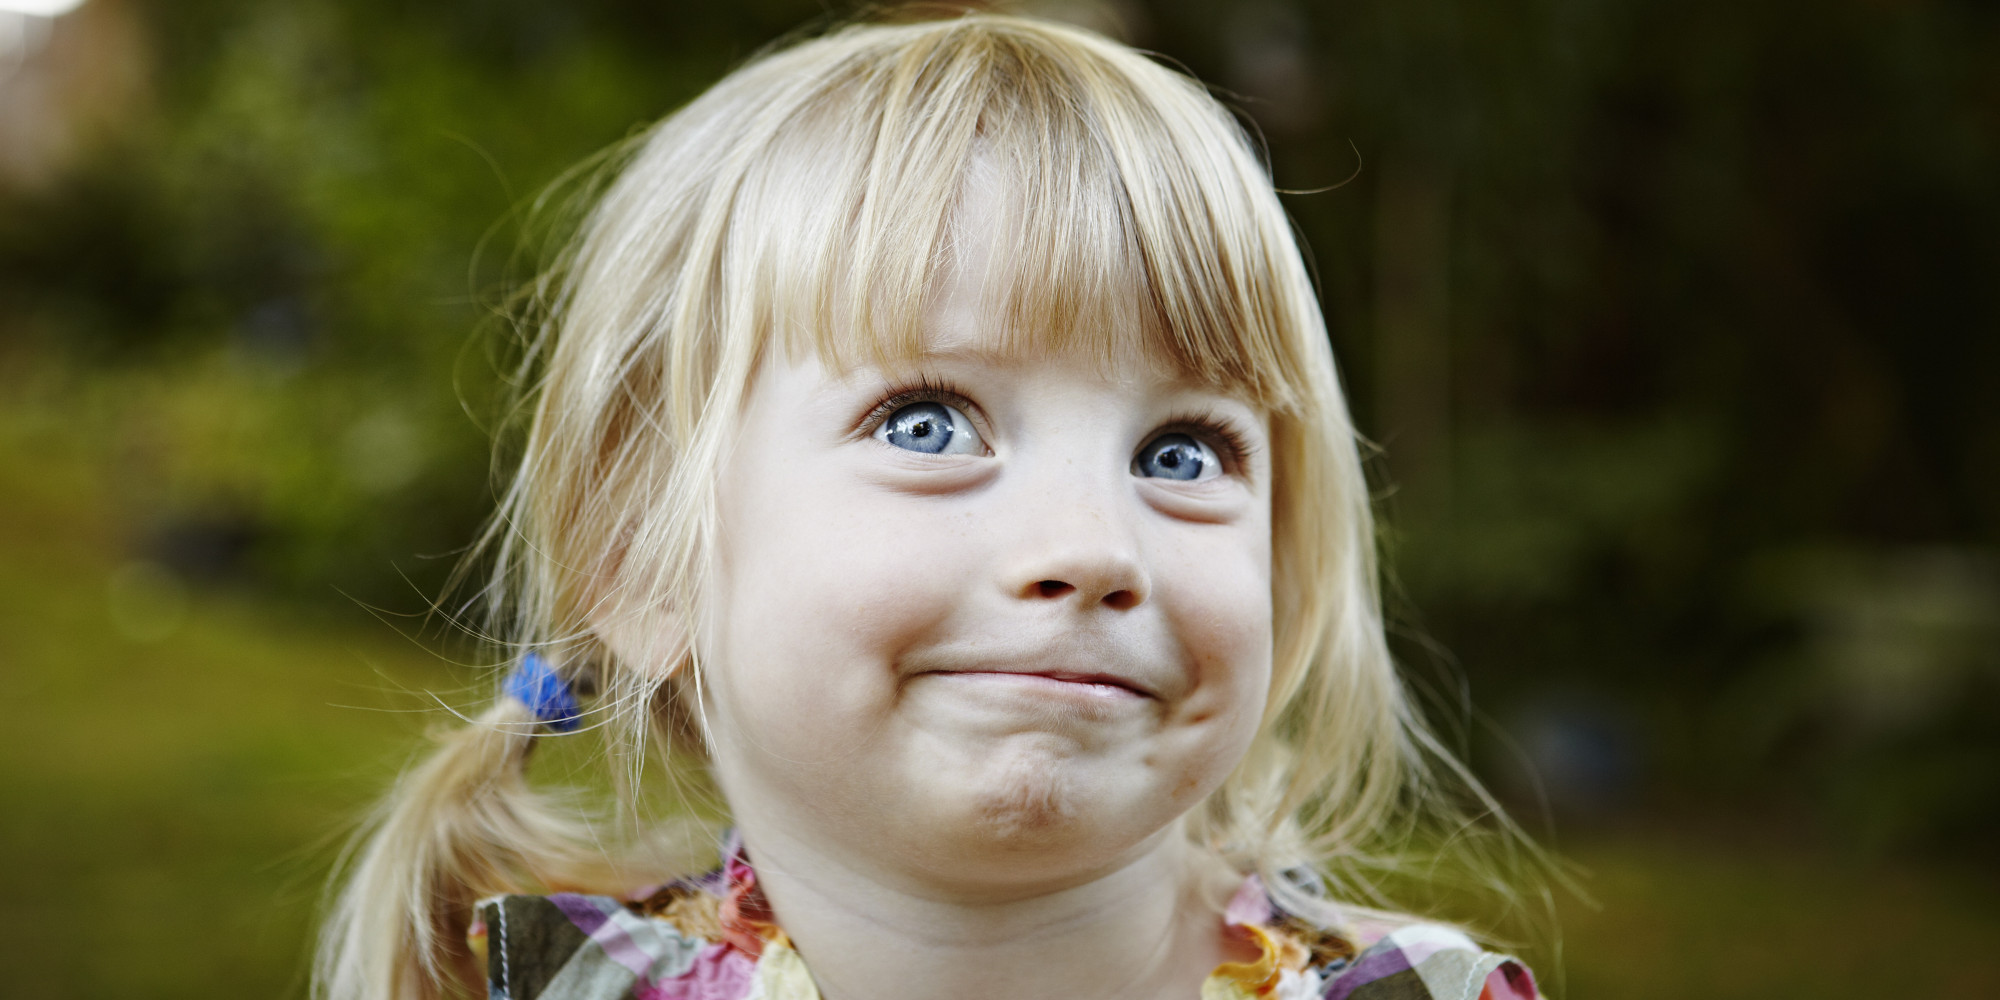 Smiling Face Girl Wallpaper India 5 Secrets Of Super Happy Parents With Well Behaved Kids